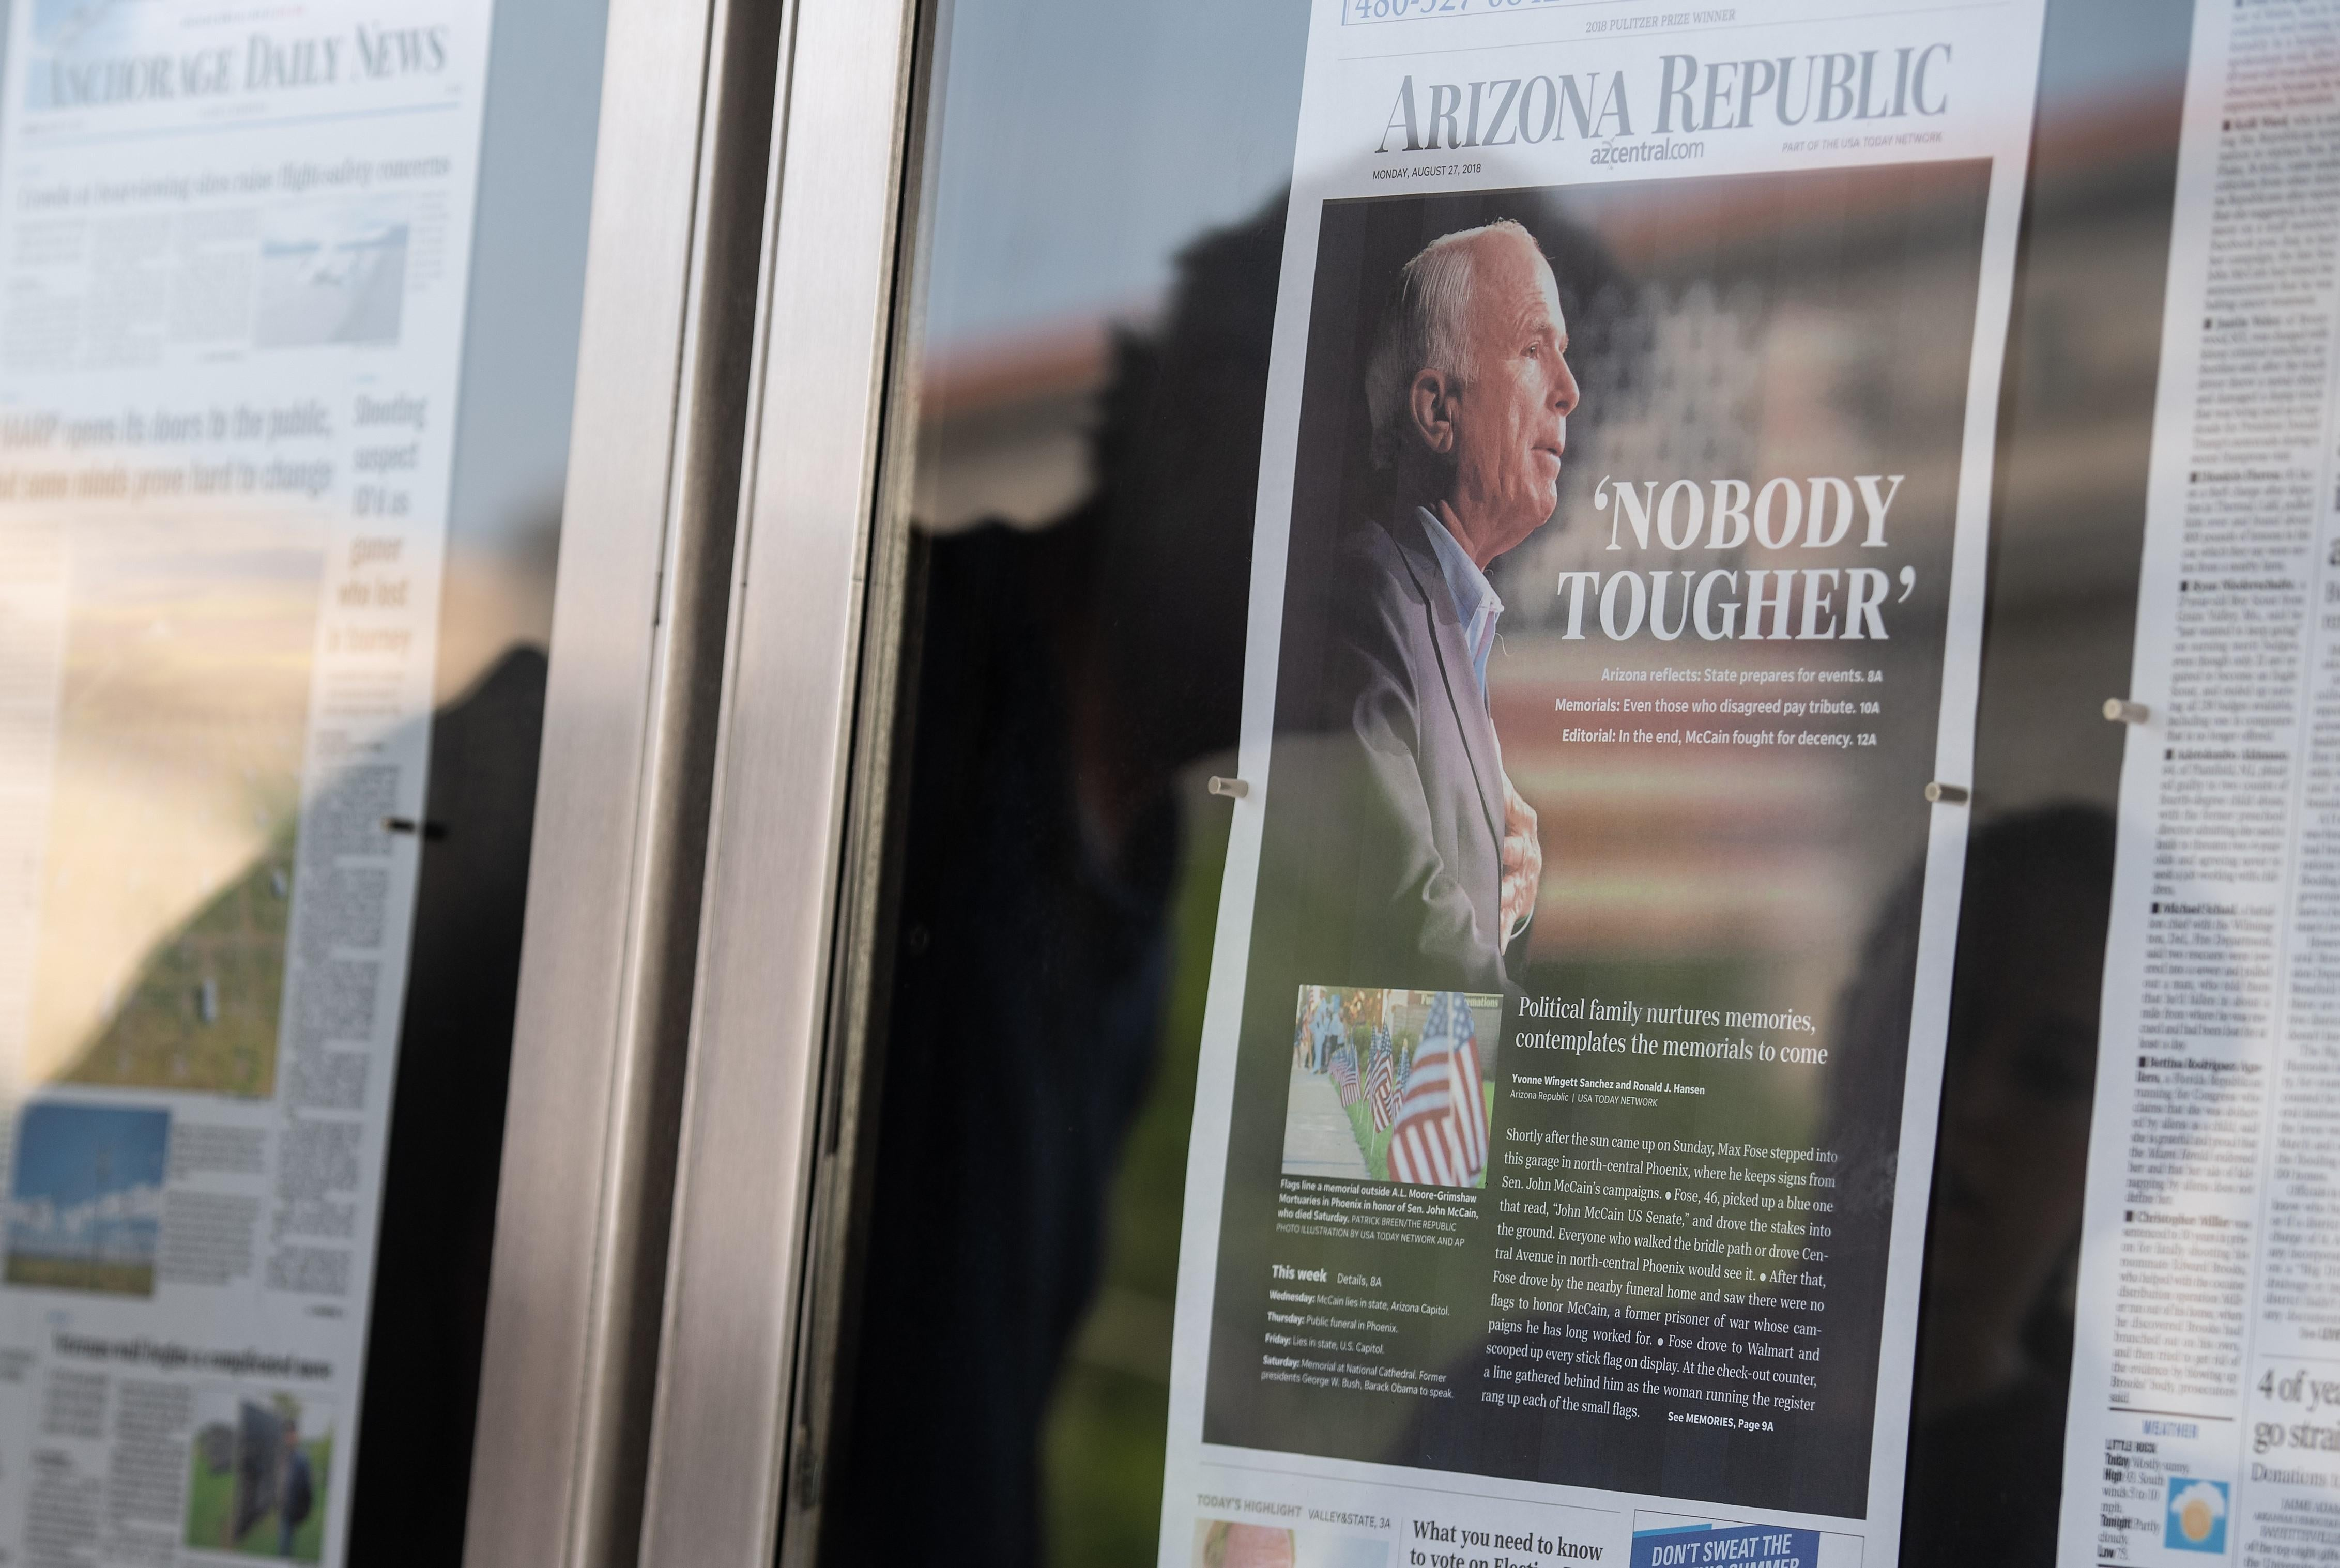 A reflection of people looking at the front page of the Arizona Republic with a picture of John McCain